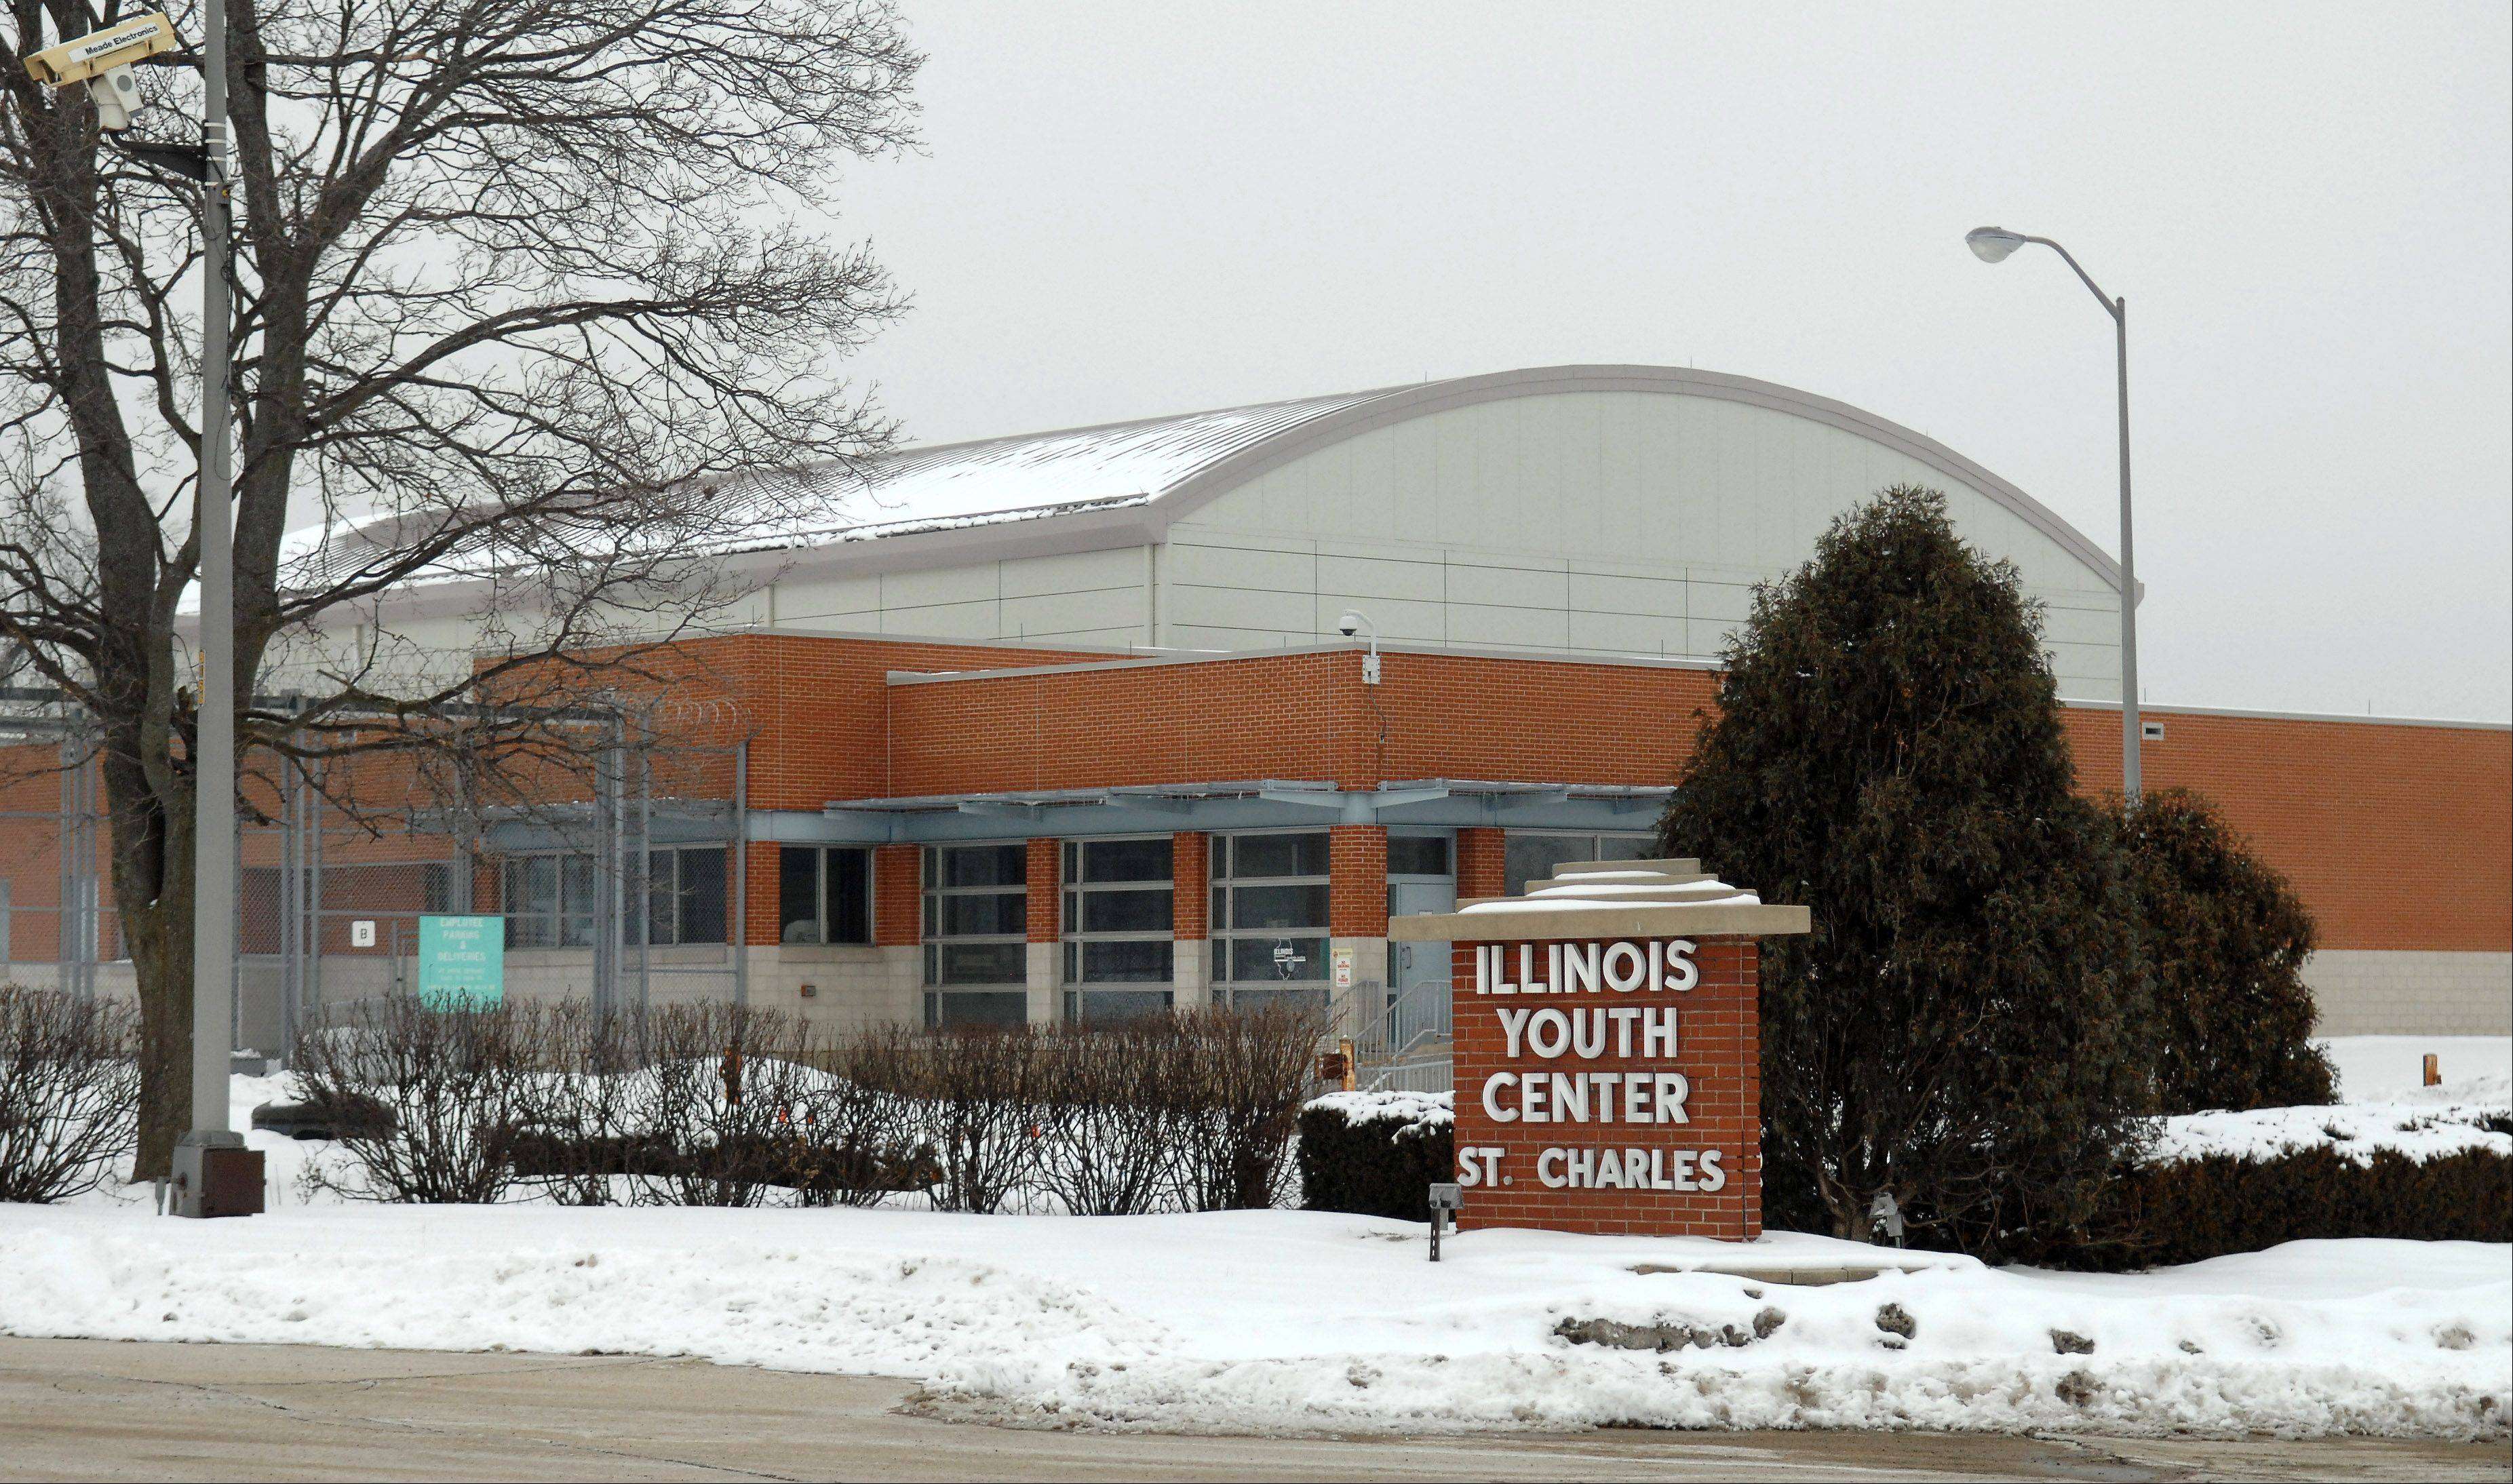 "A new watchdog report indicates staffing levels of teachers, counselors and security at the Illinois Youth Center in St. Charles is so bad that it ""potentially violates youths' constitutional right to receive an education and adequate mental health treatment."" The condition comes after a doubling of the facility's population as the result of the closure of the Joliet facility."